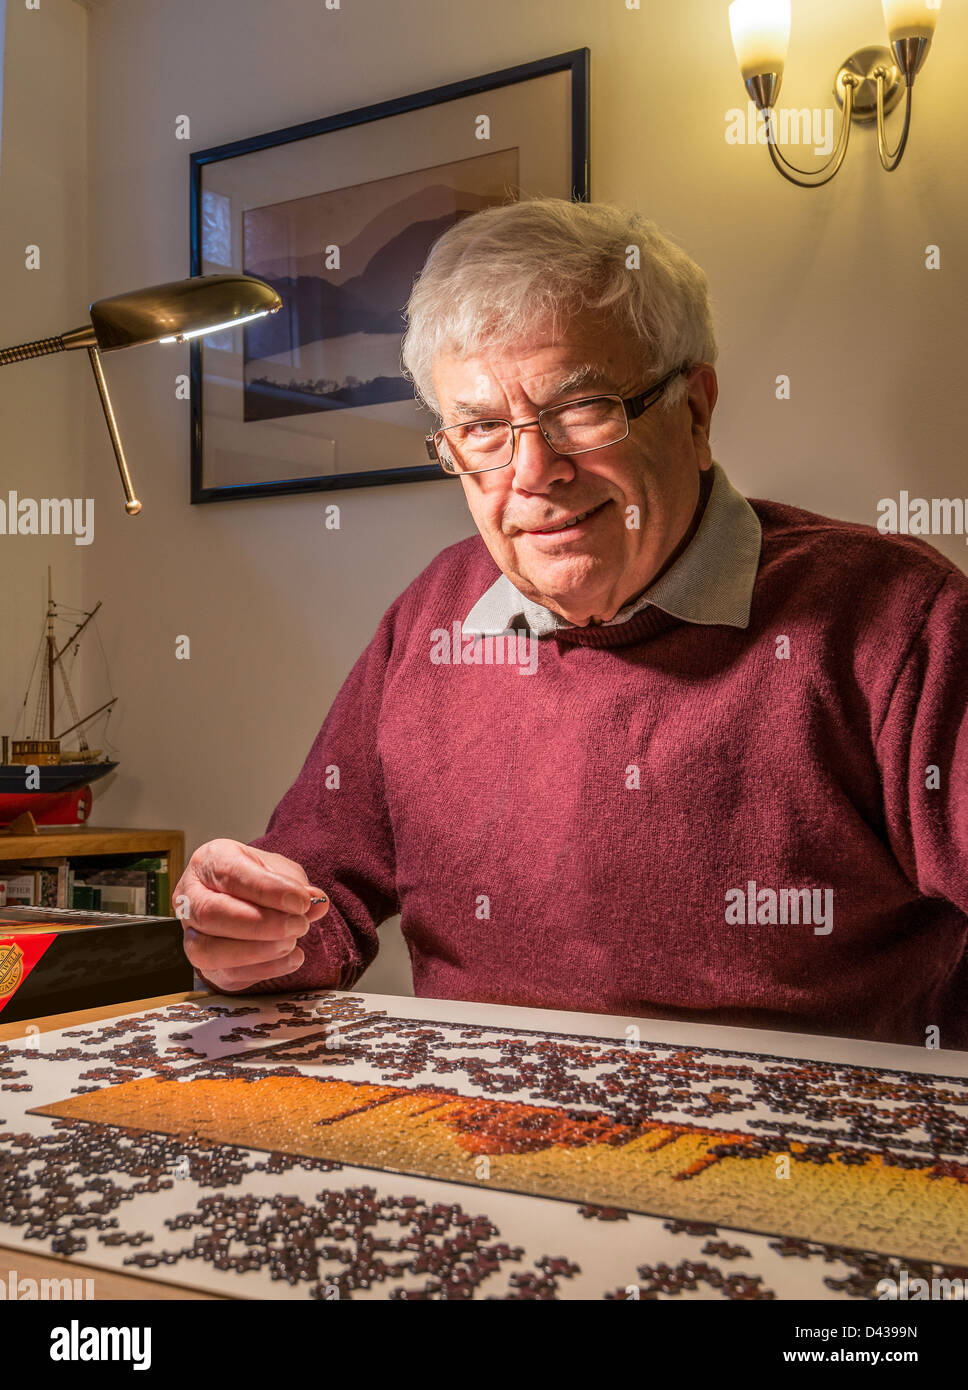 RETIRED MAN, OAP,  WITH JIGSAW LOOKING AT CAMERA - Stock Image